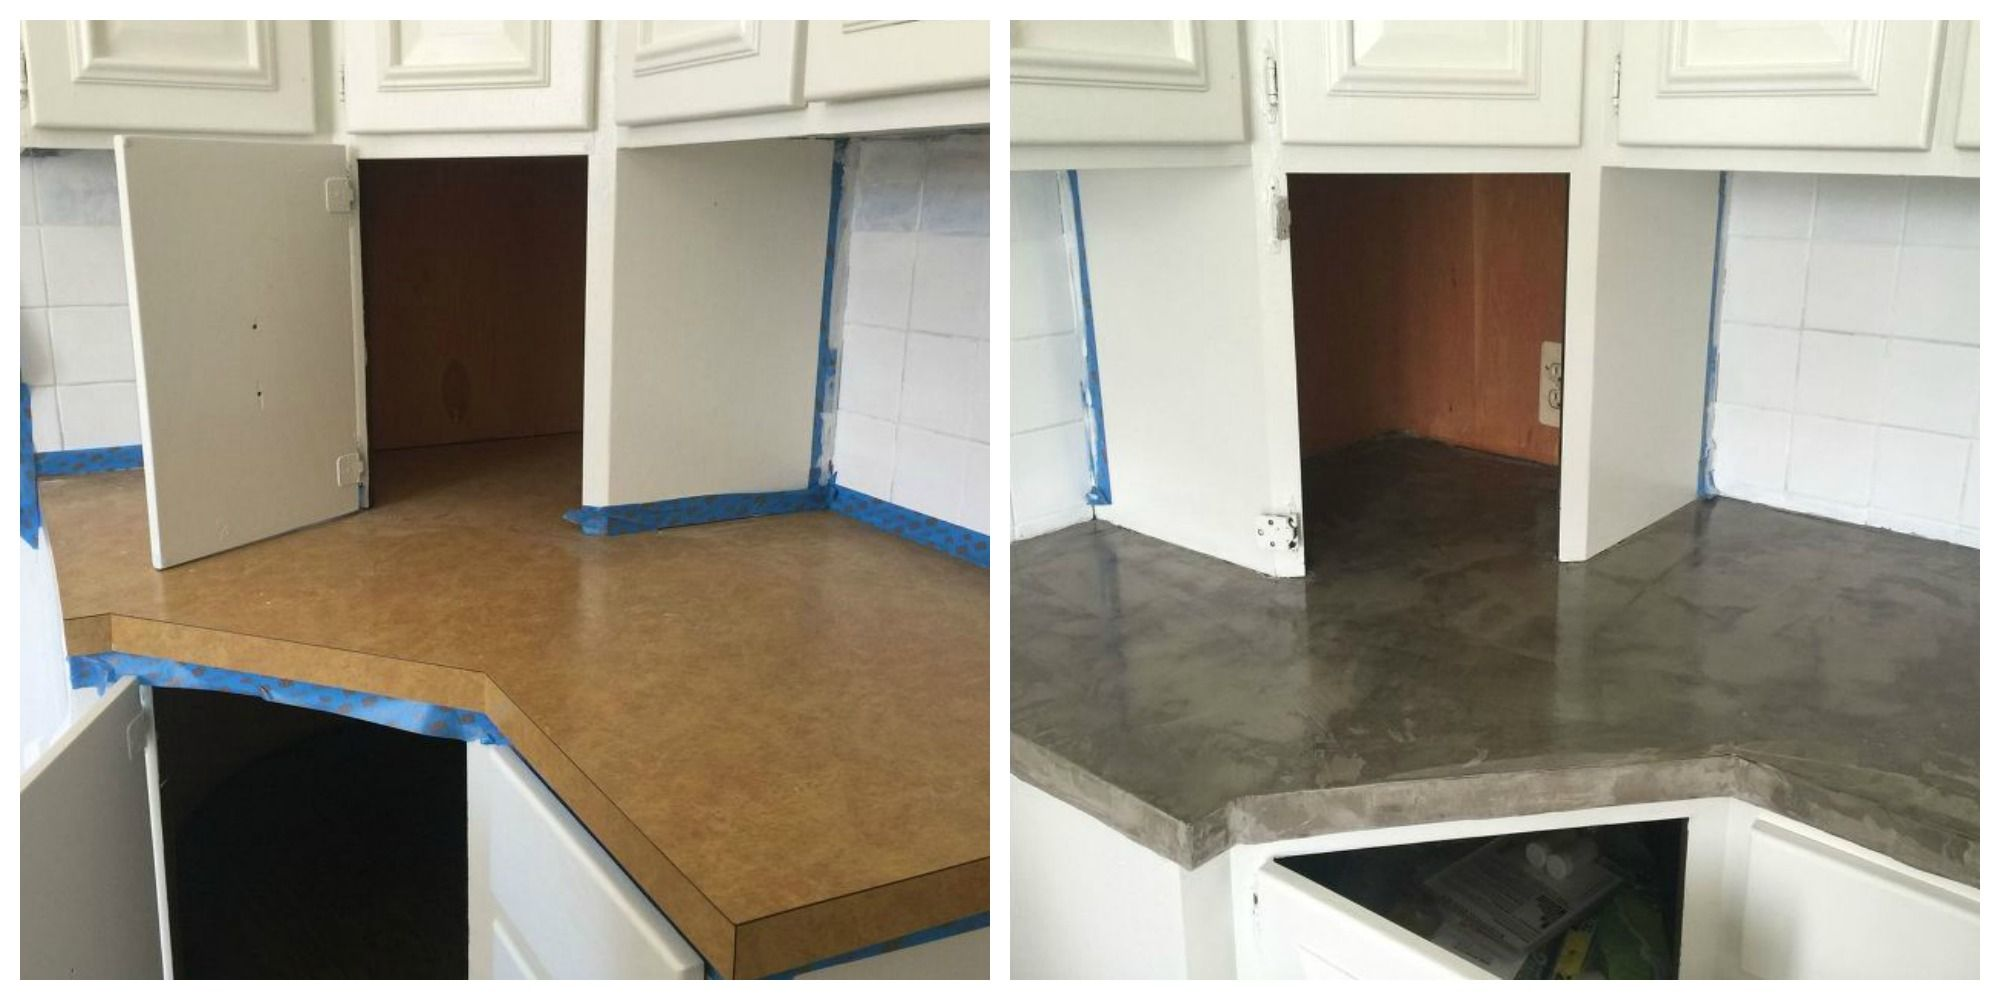 This Brilliant Diy Is The Easiest Way To Fake Concrete Countertops How To Make Look With Cement